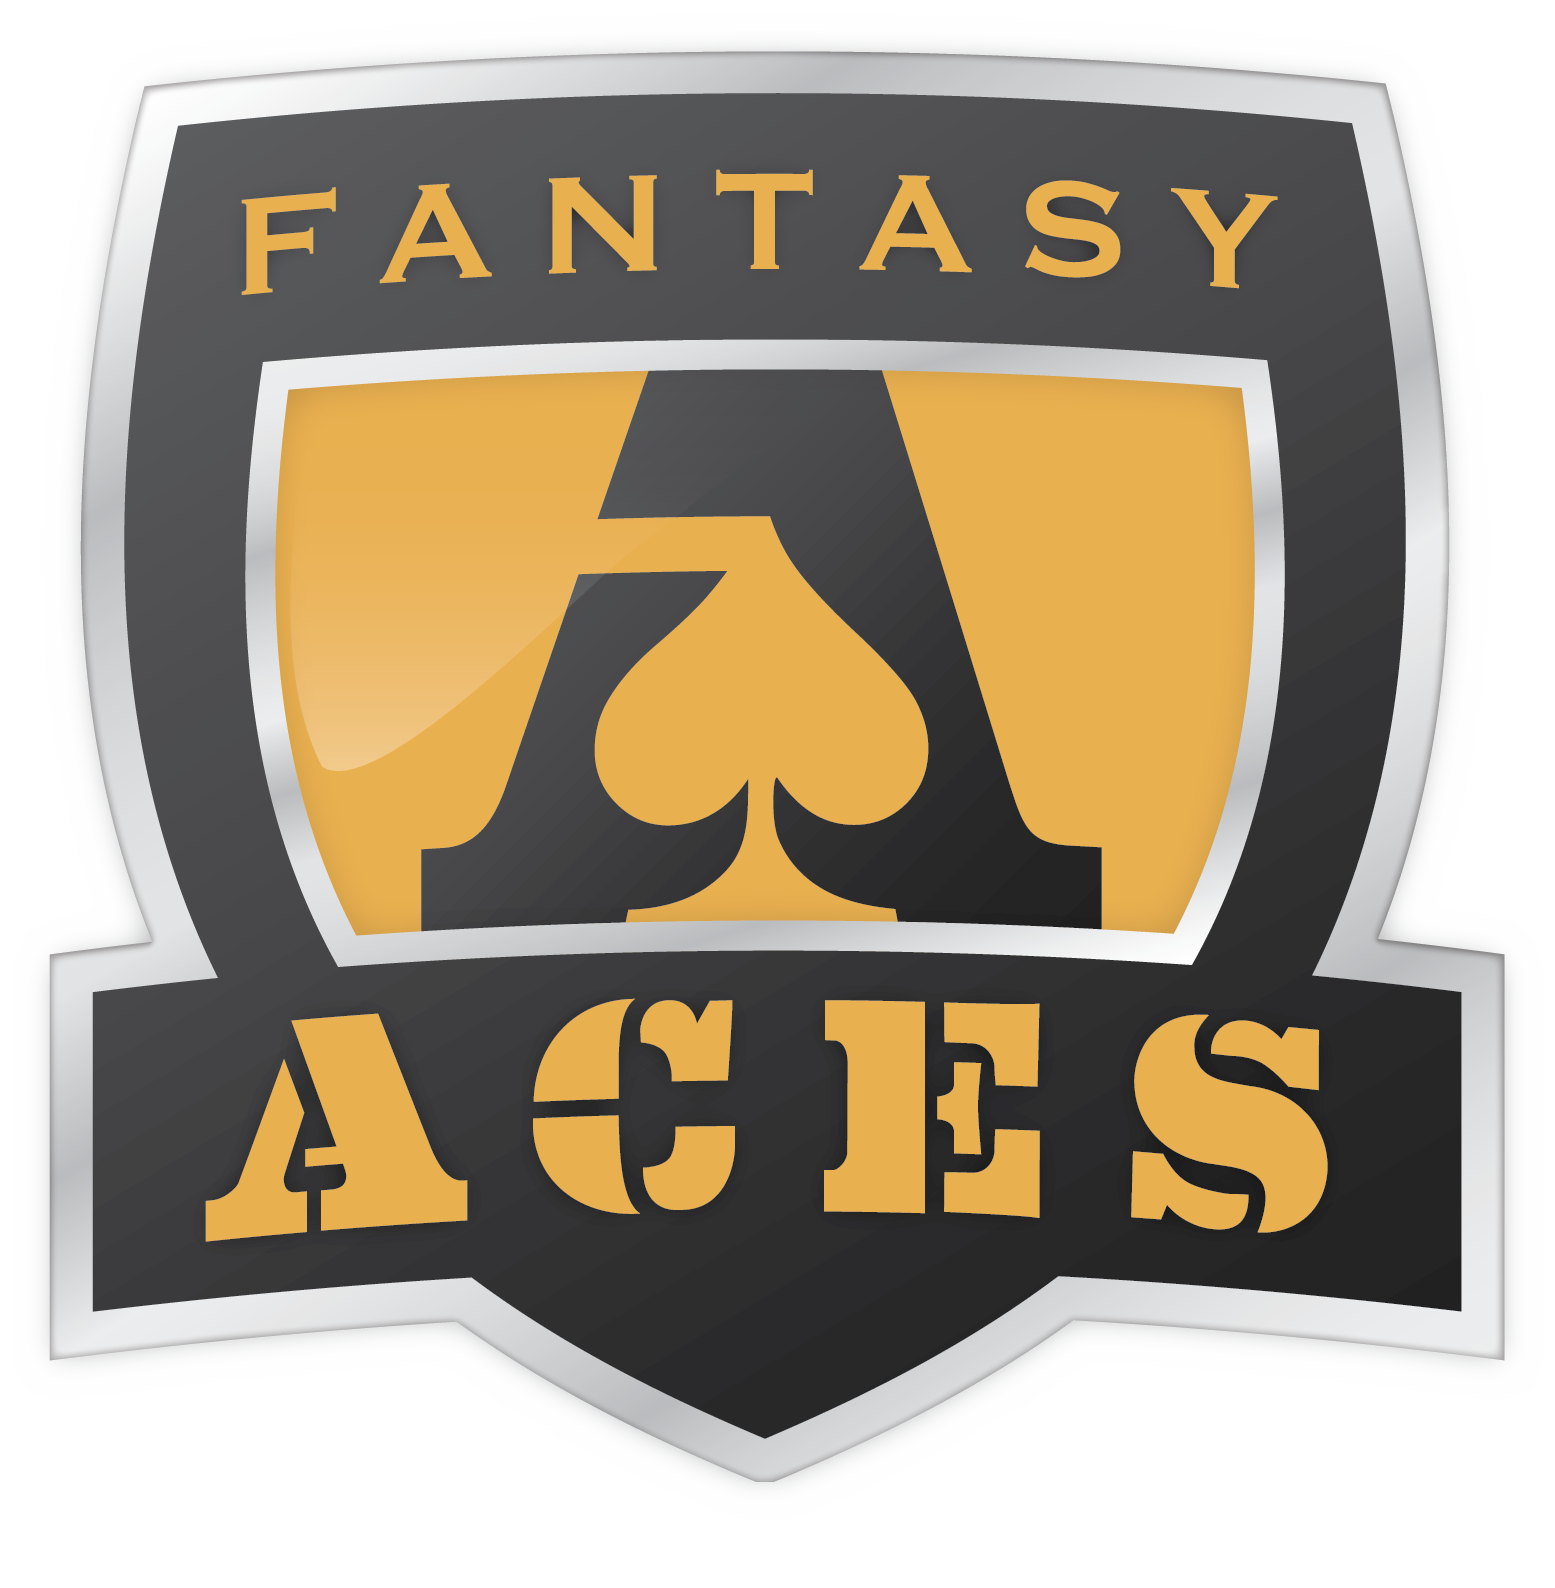 FantasyAces Promotion Use Promo Alarm